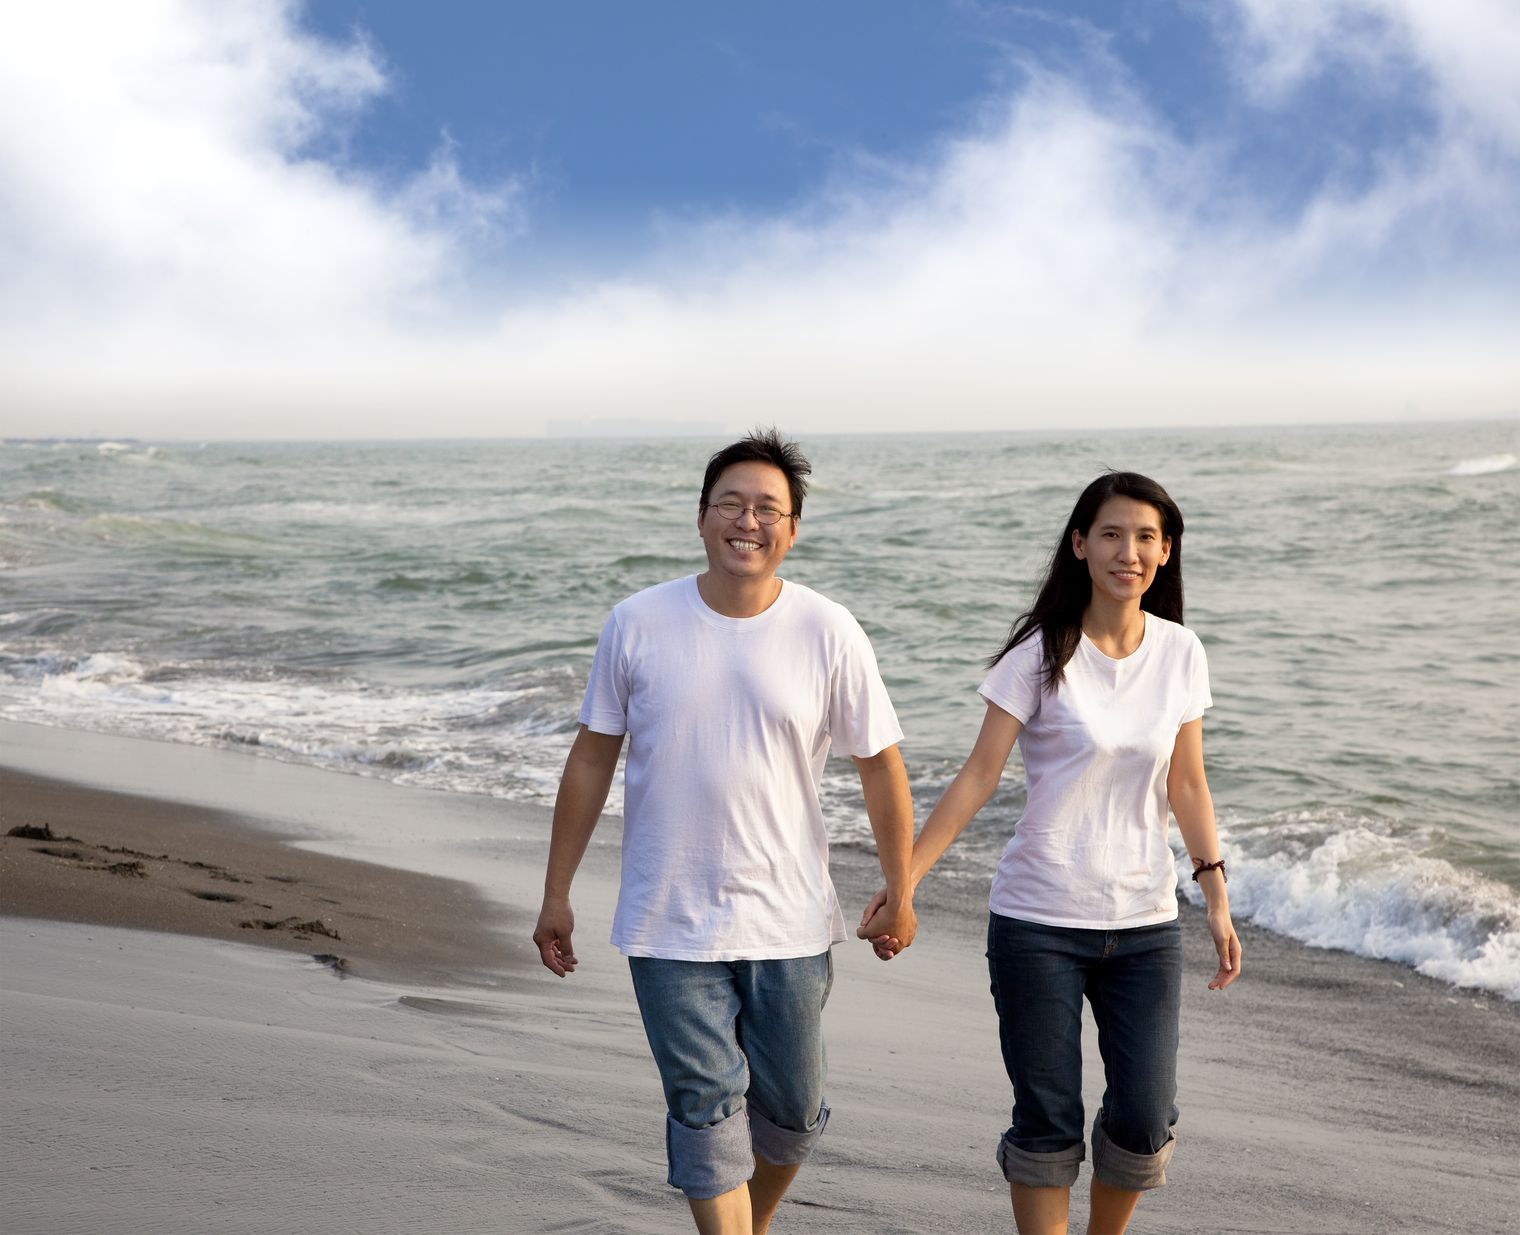 Bringing a fiance or spouse to the U.S? We can help you with the process